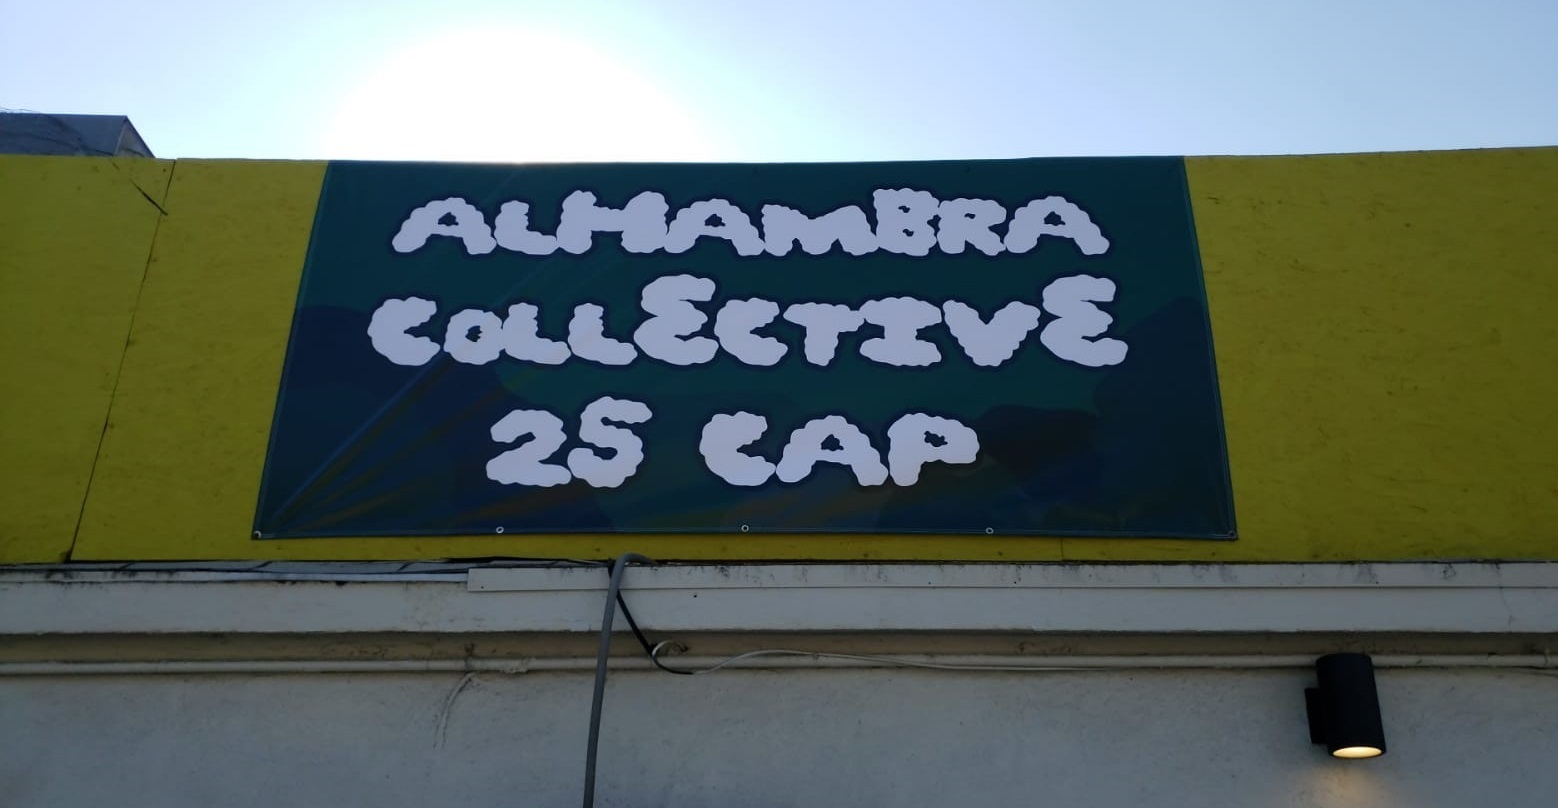 Alhambra Collective 25 Cap - Medical Marijuana Doctors - Cannabizme.com